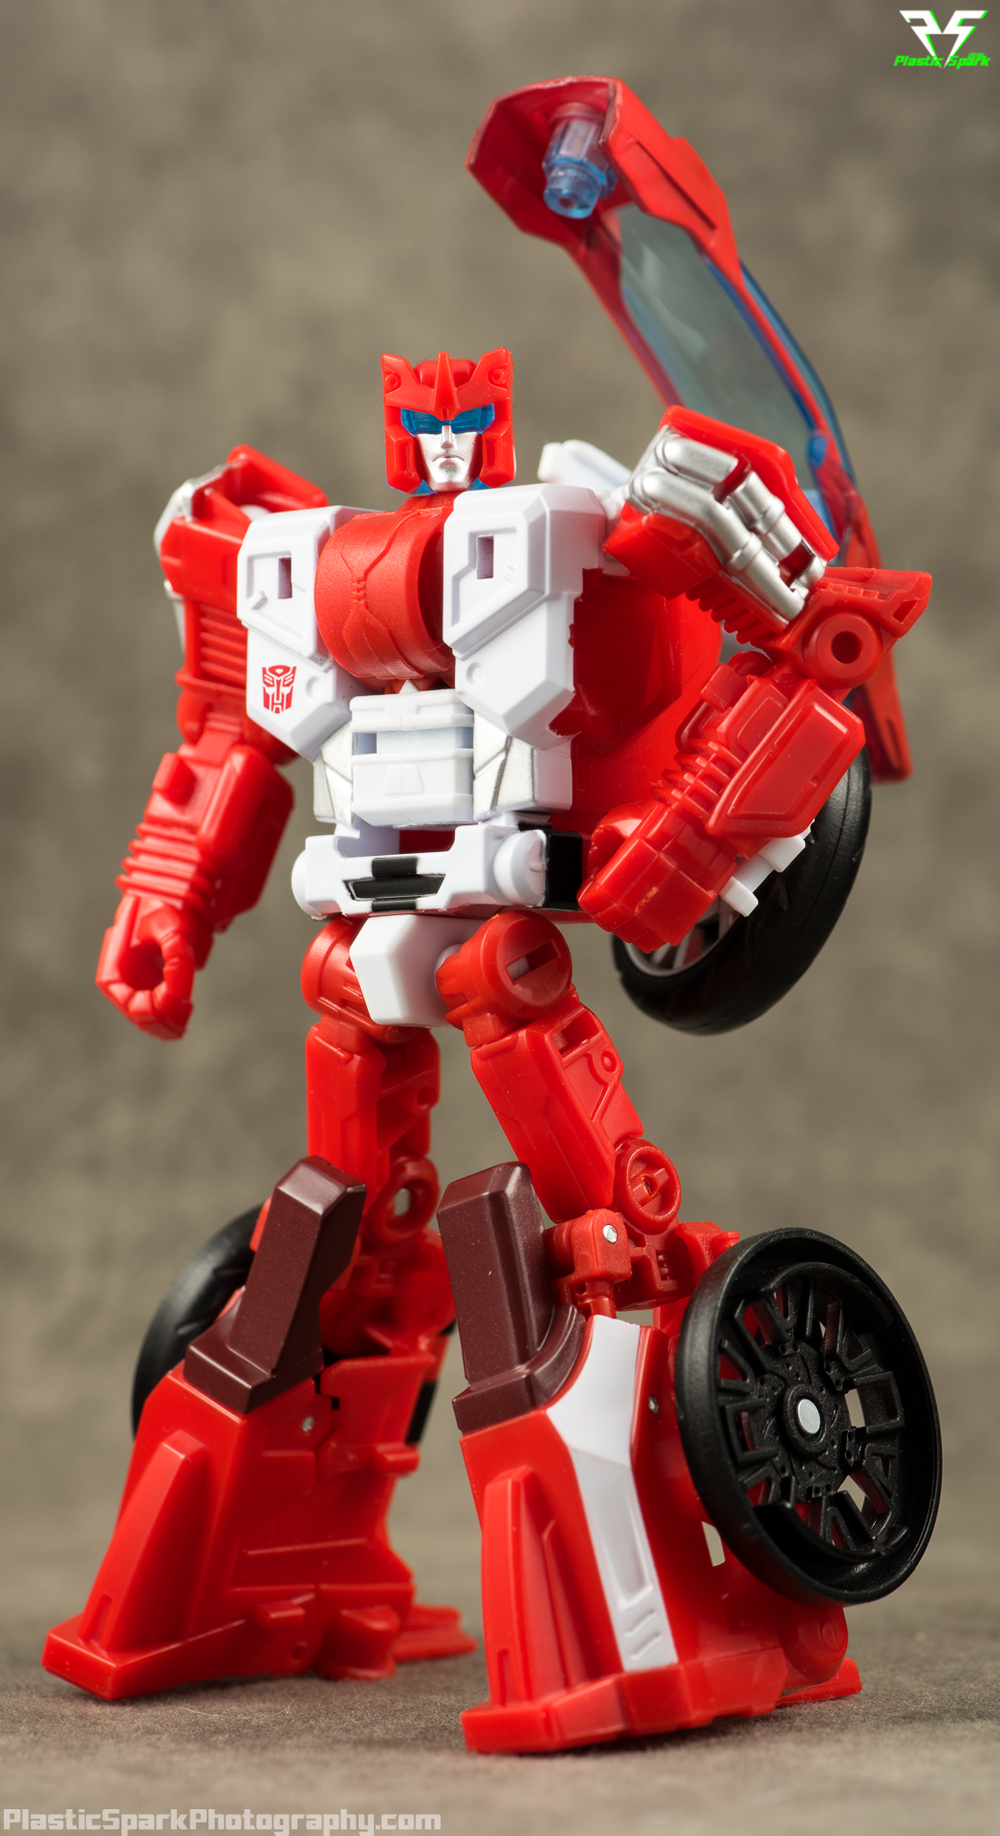 Unite-Warriors-Computron-(31-of-40).png